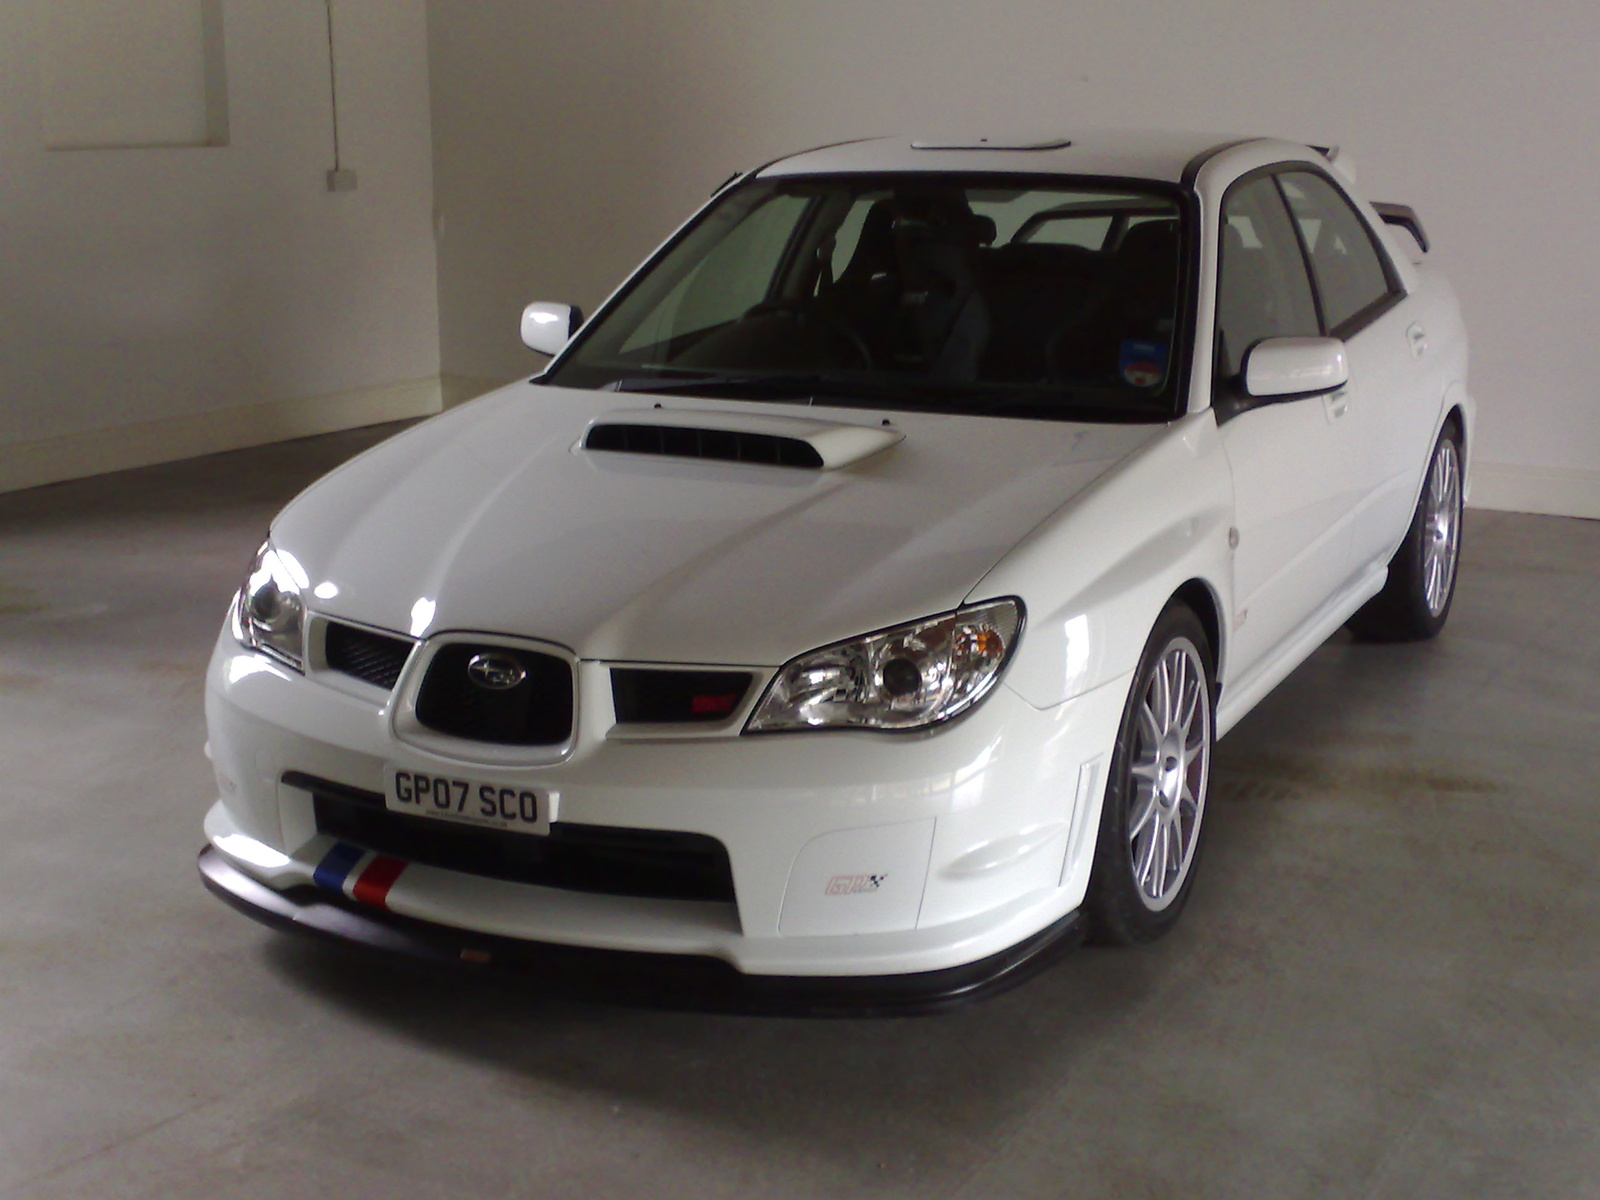 2008 subaru impreza wrx sti pictures cargurus. Black Bedroom Furniture Sets. Home Design Ideas